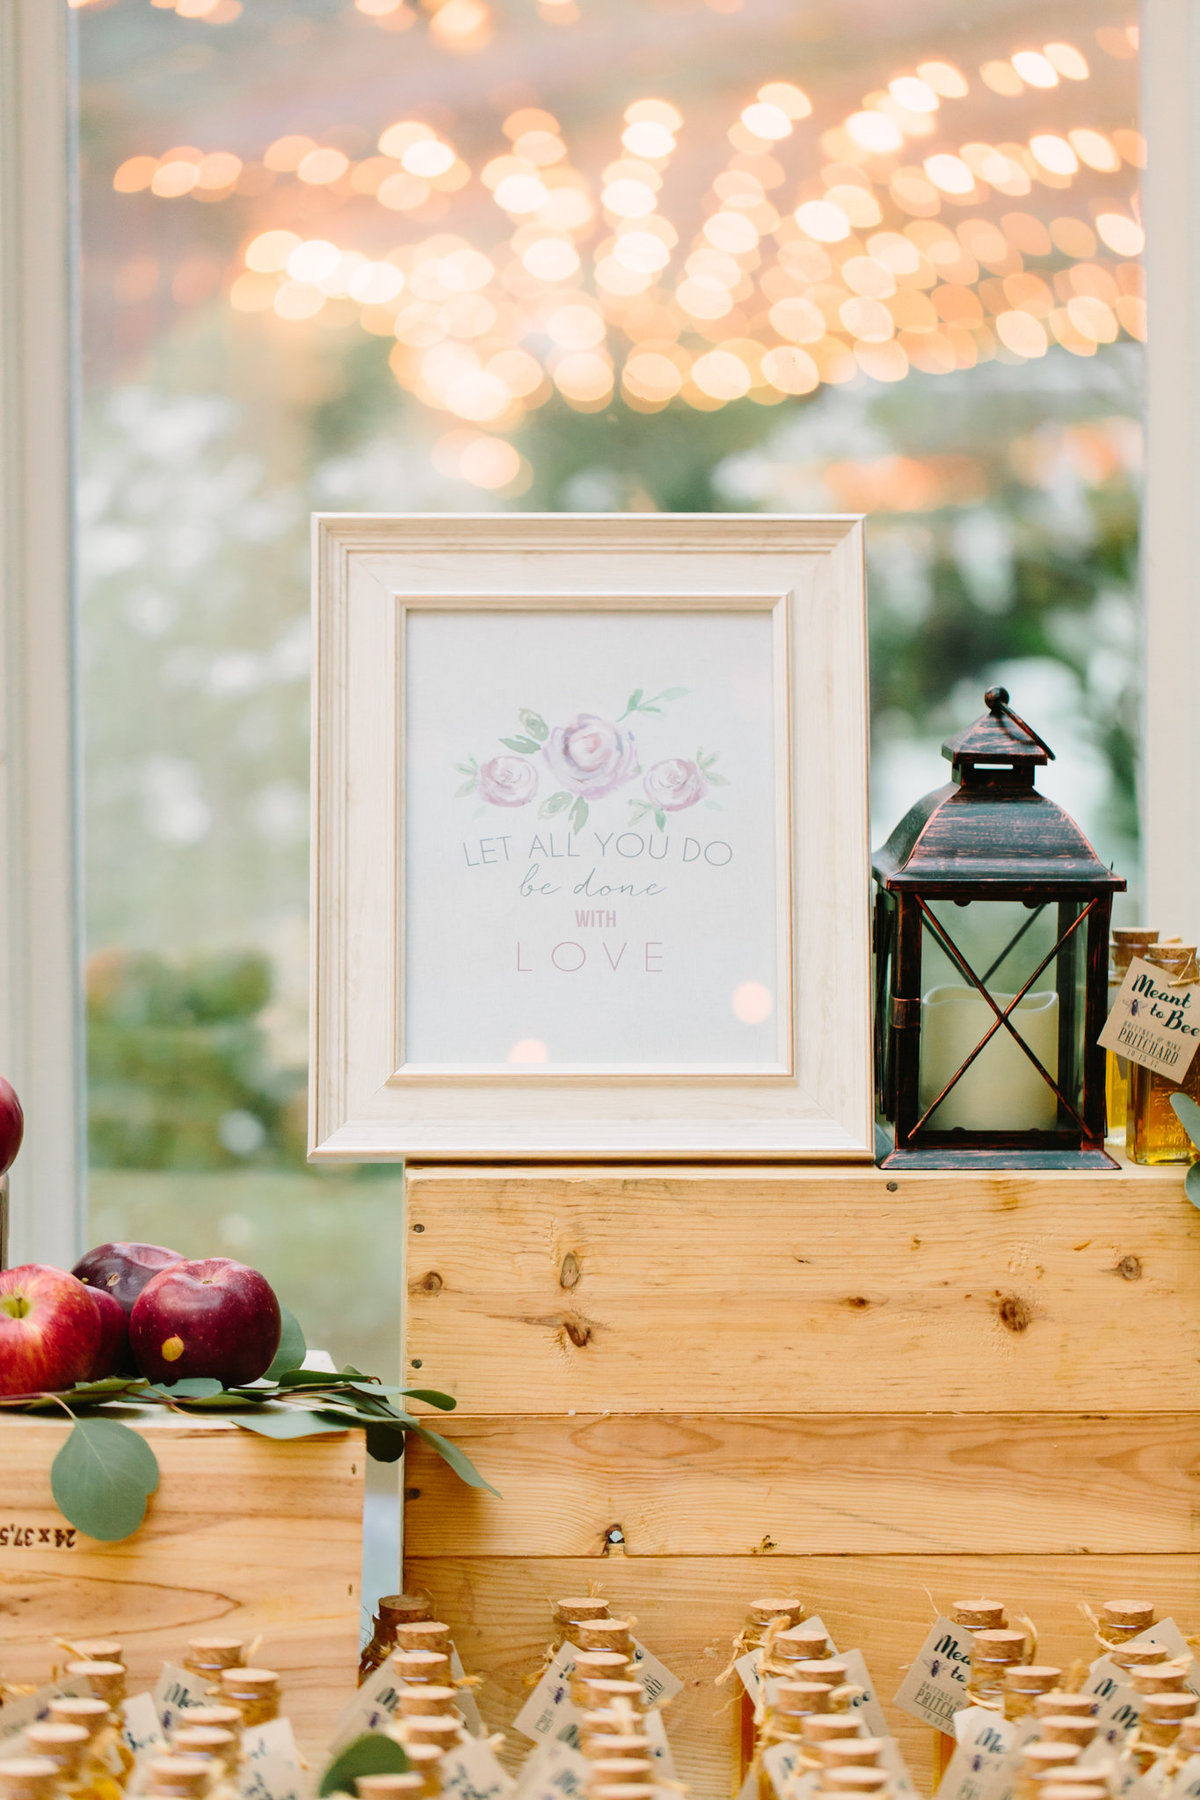 BHULLPHOTOGRAPHY_crabtreekittlehousewedding-1-6